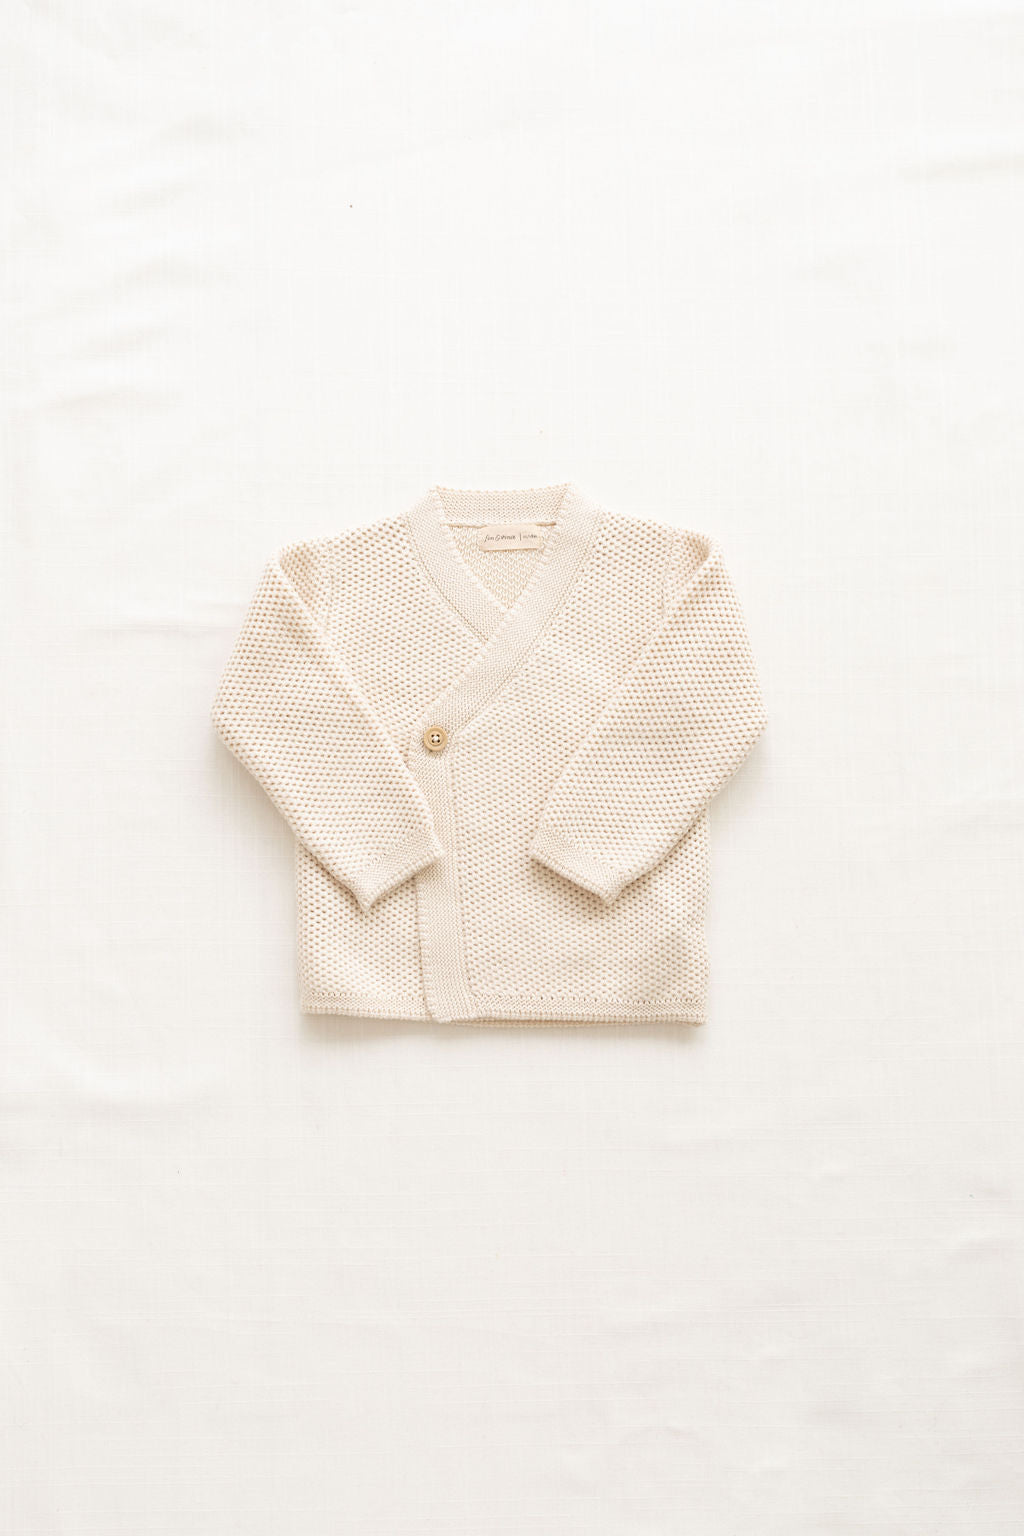 Fin and Vince - Knitted Wrap Cardigan (Milk)